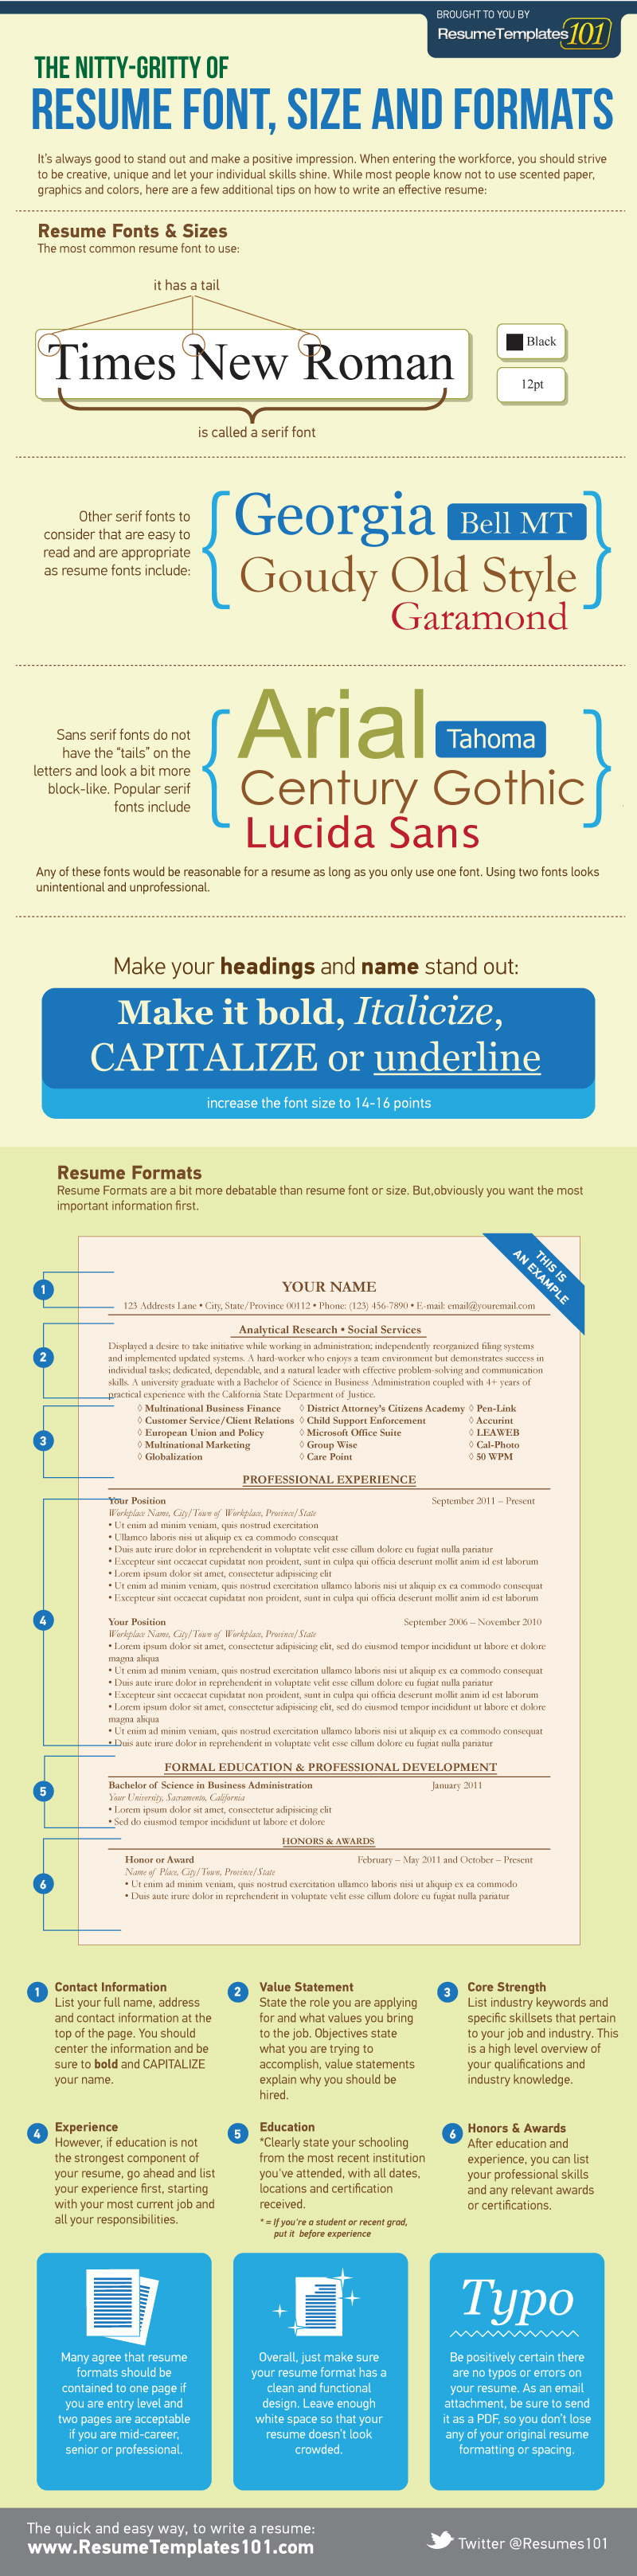 perfect resume font size and formats infographic - Perfect Resumes